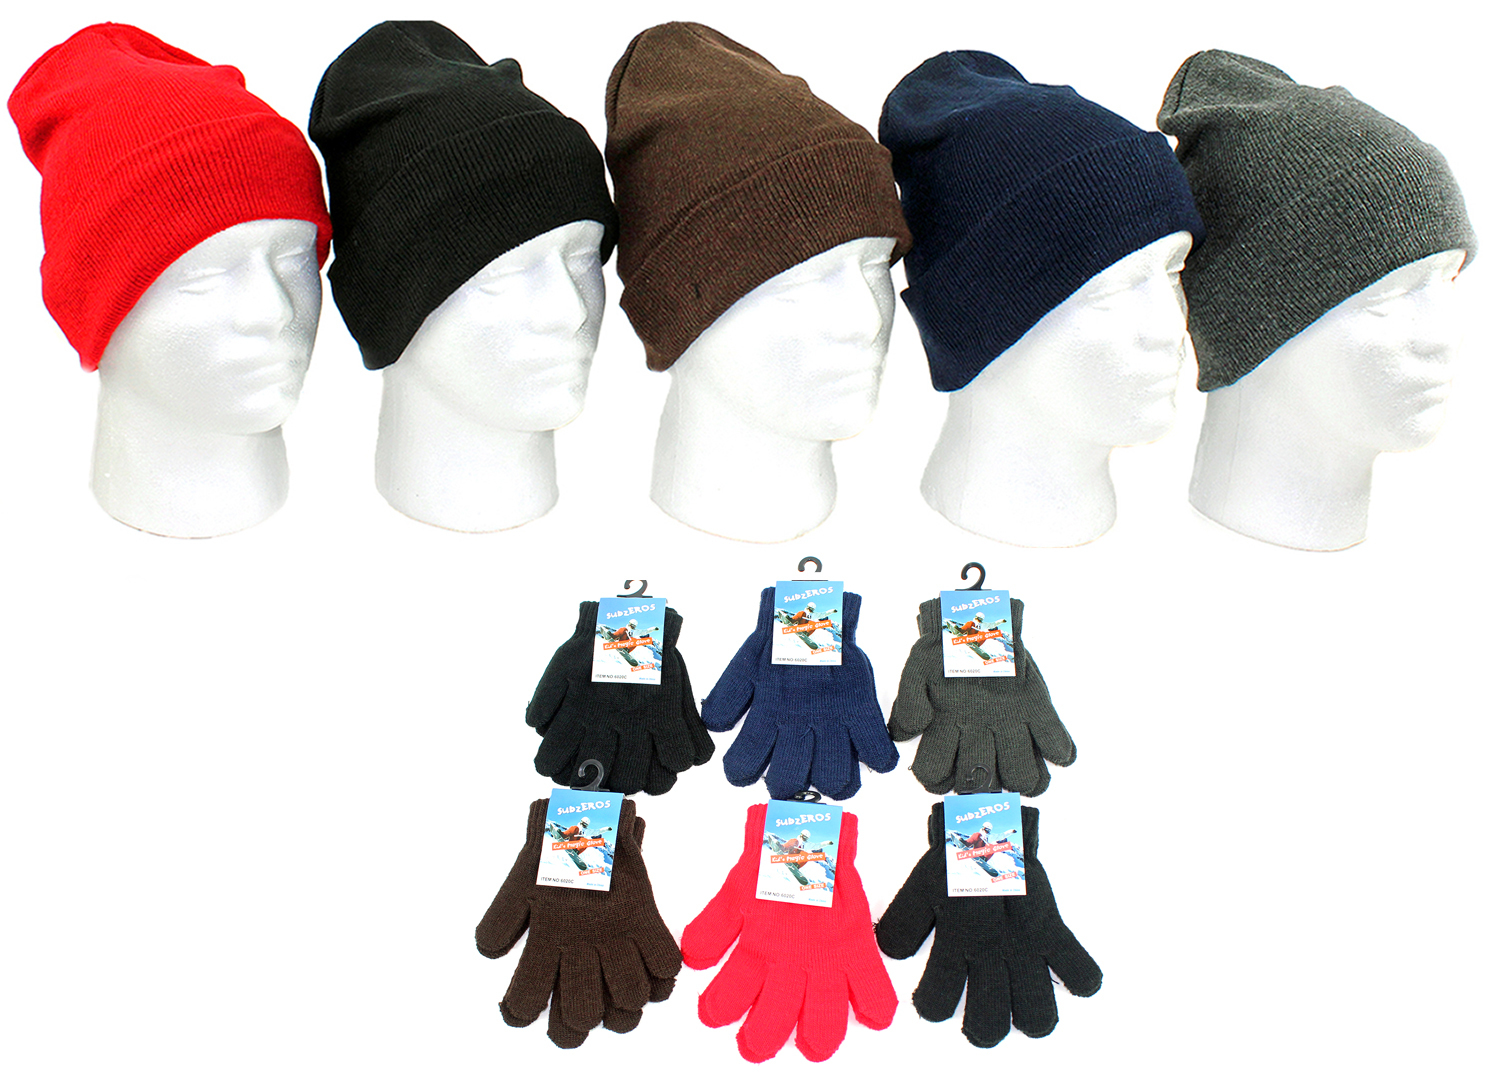 Great Styles and Colors New Wholesale Lot of 120 Brand New Winter Hats